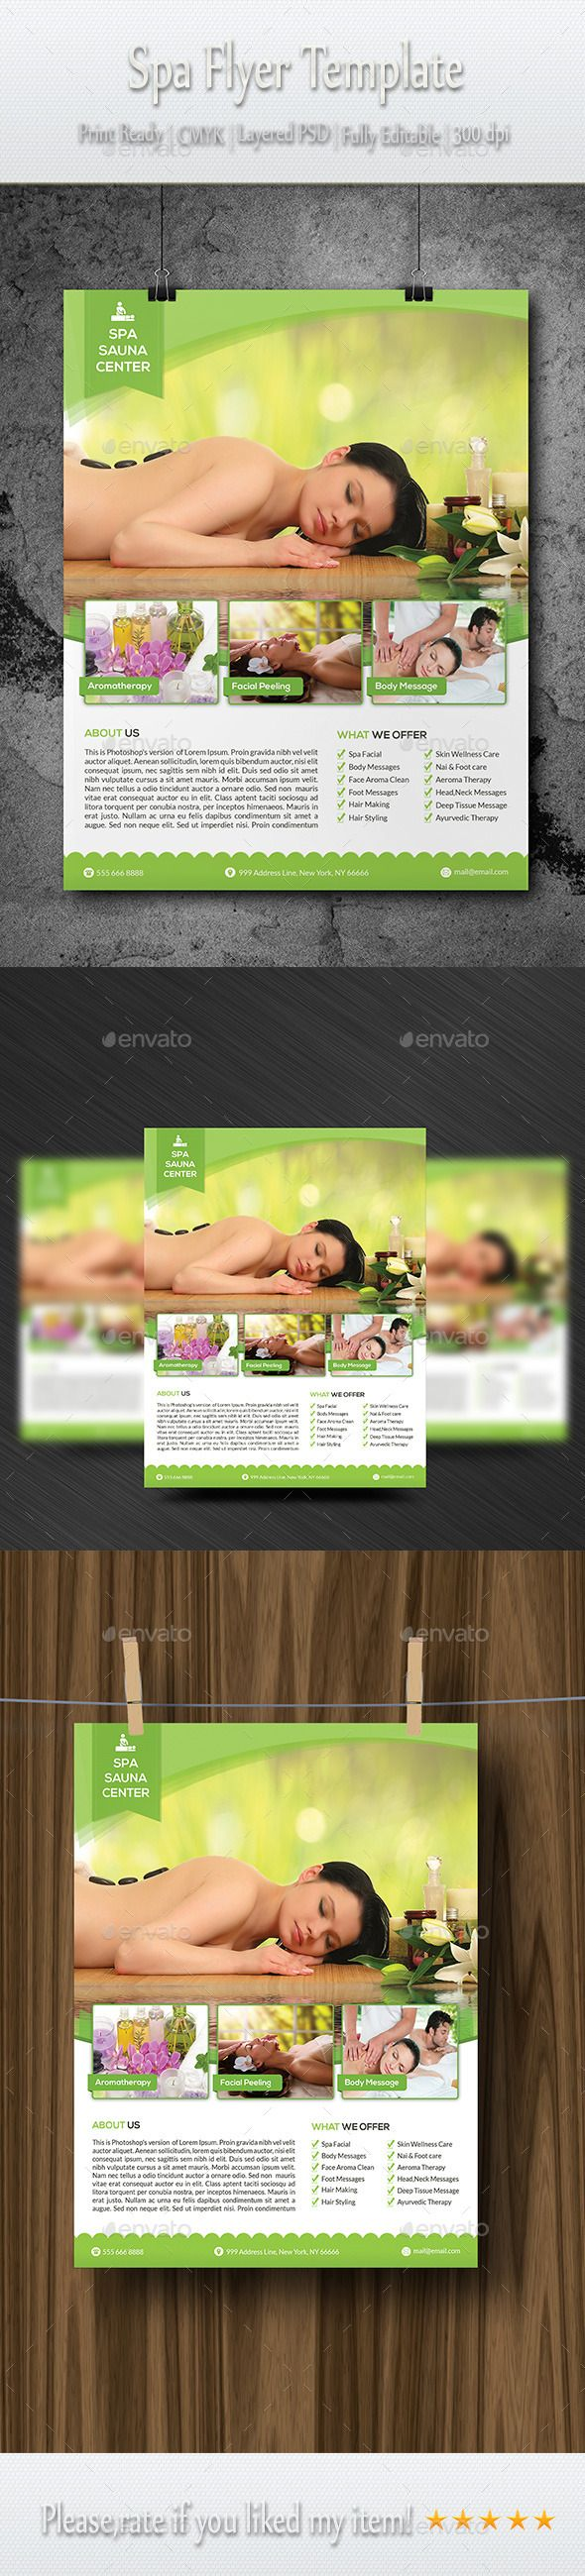 Spa Flyer Template PSD Buy And Download Httpgraphicrivernet - Buy flyer templates